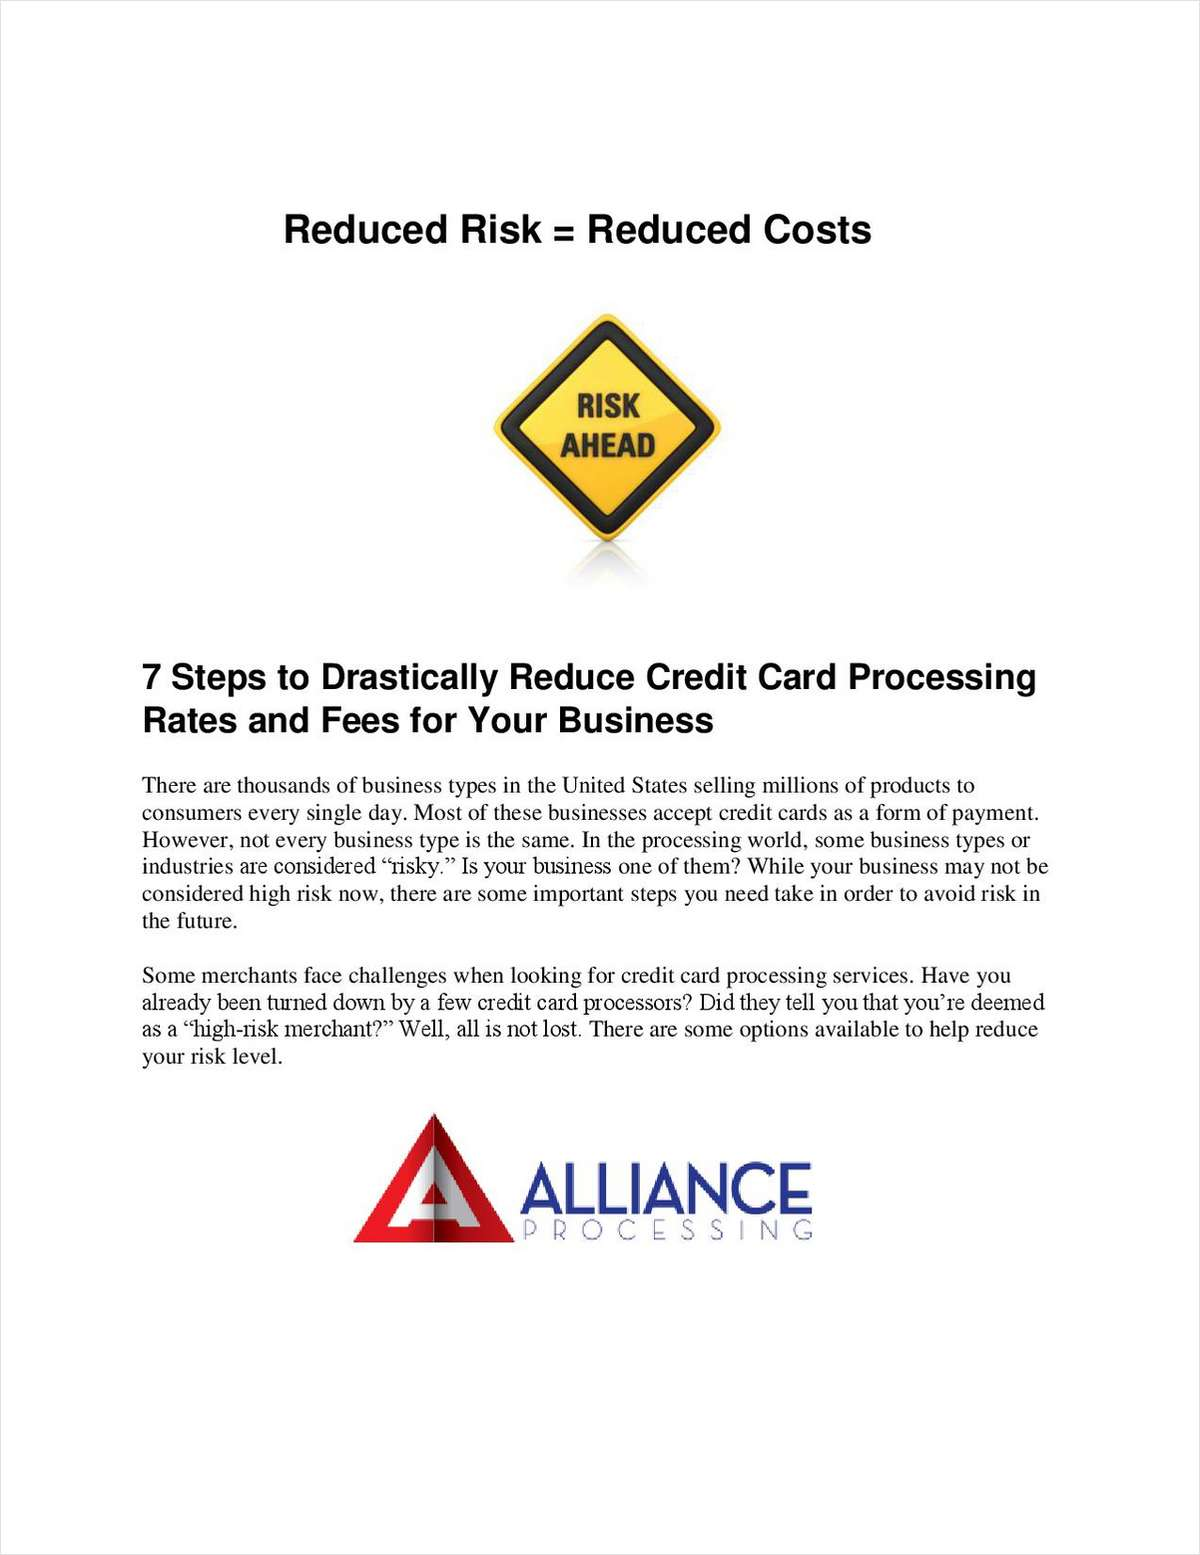 7 steps to drastically reduce credit card processing rates and fees 7 steps to drastically reduce credit card processing rates and fees for your business free alliance processing white paper reheart Image collections